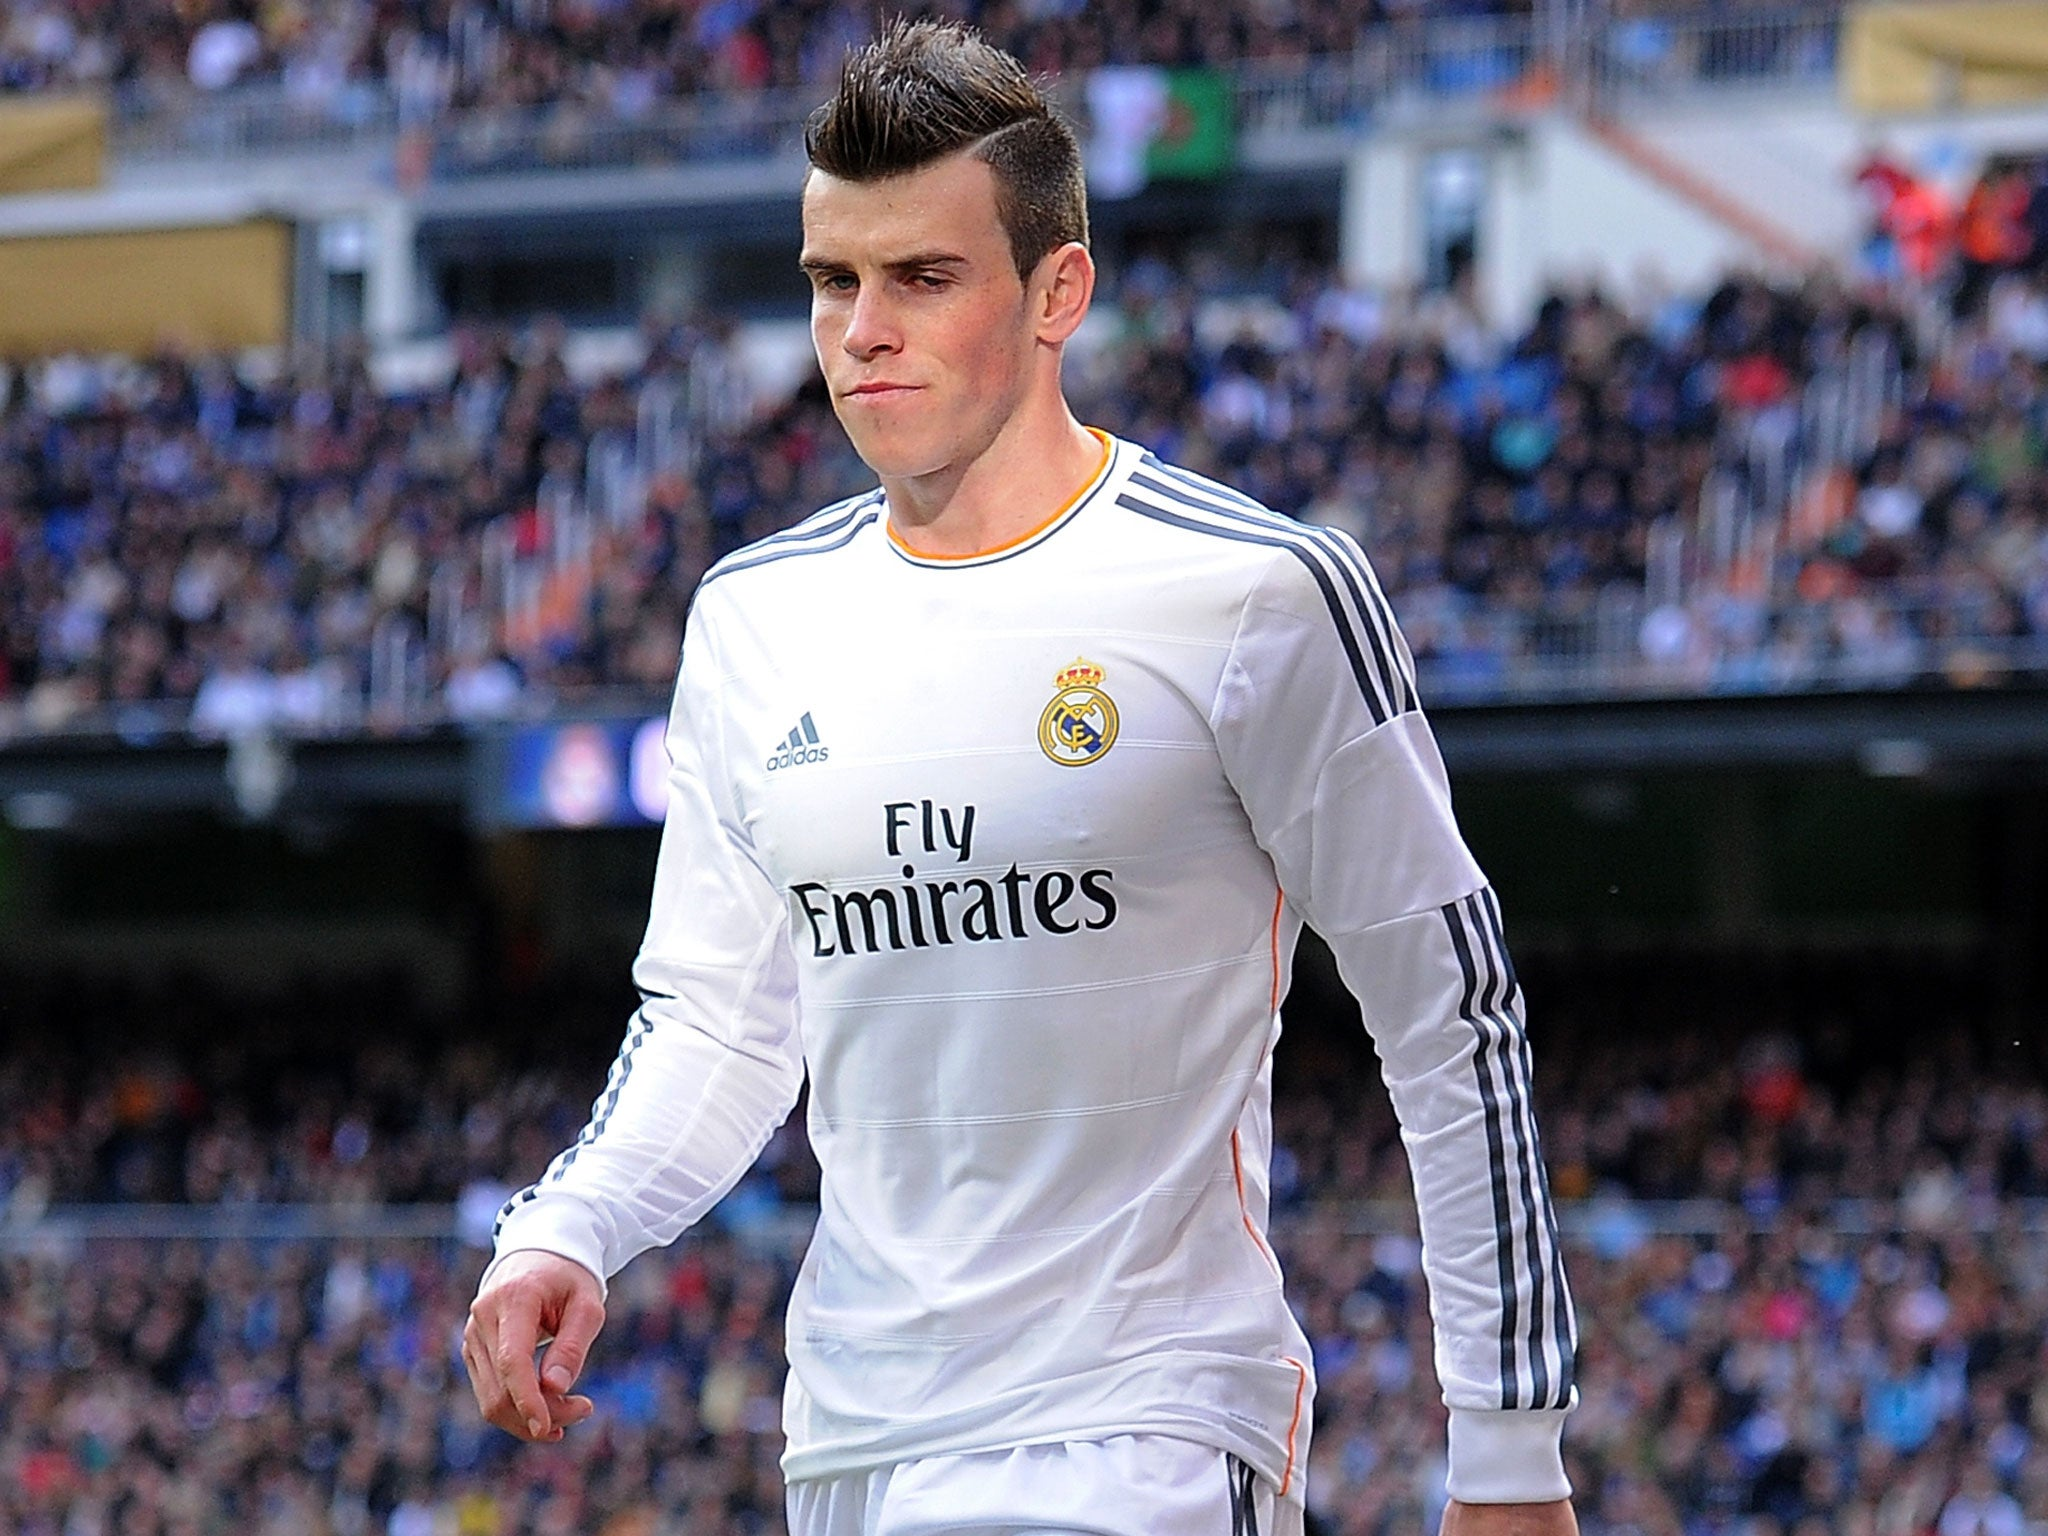 Gareth bale his genitals are fine says real madrid manager gareth bale his genitals are fine says real madrid manager carlo ancelotti after welshman is ruled out of espanyol clash the independent voltagebd Gallery